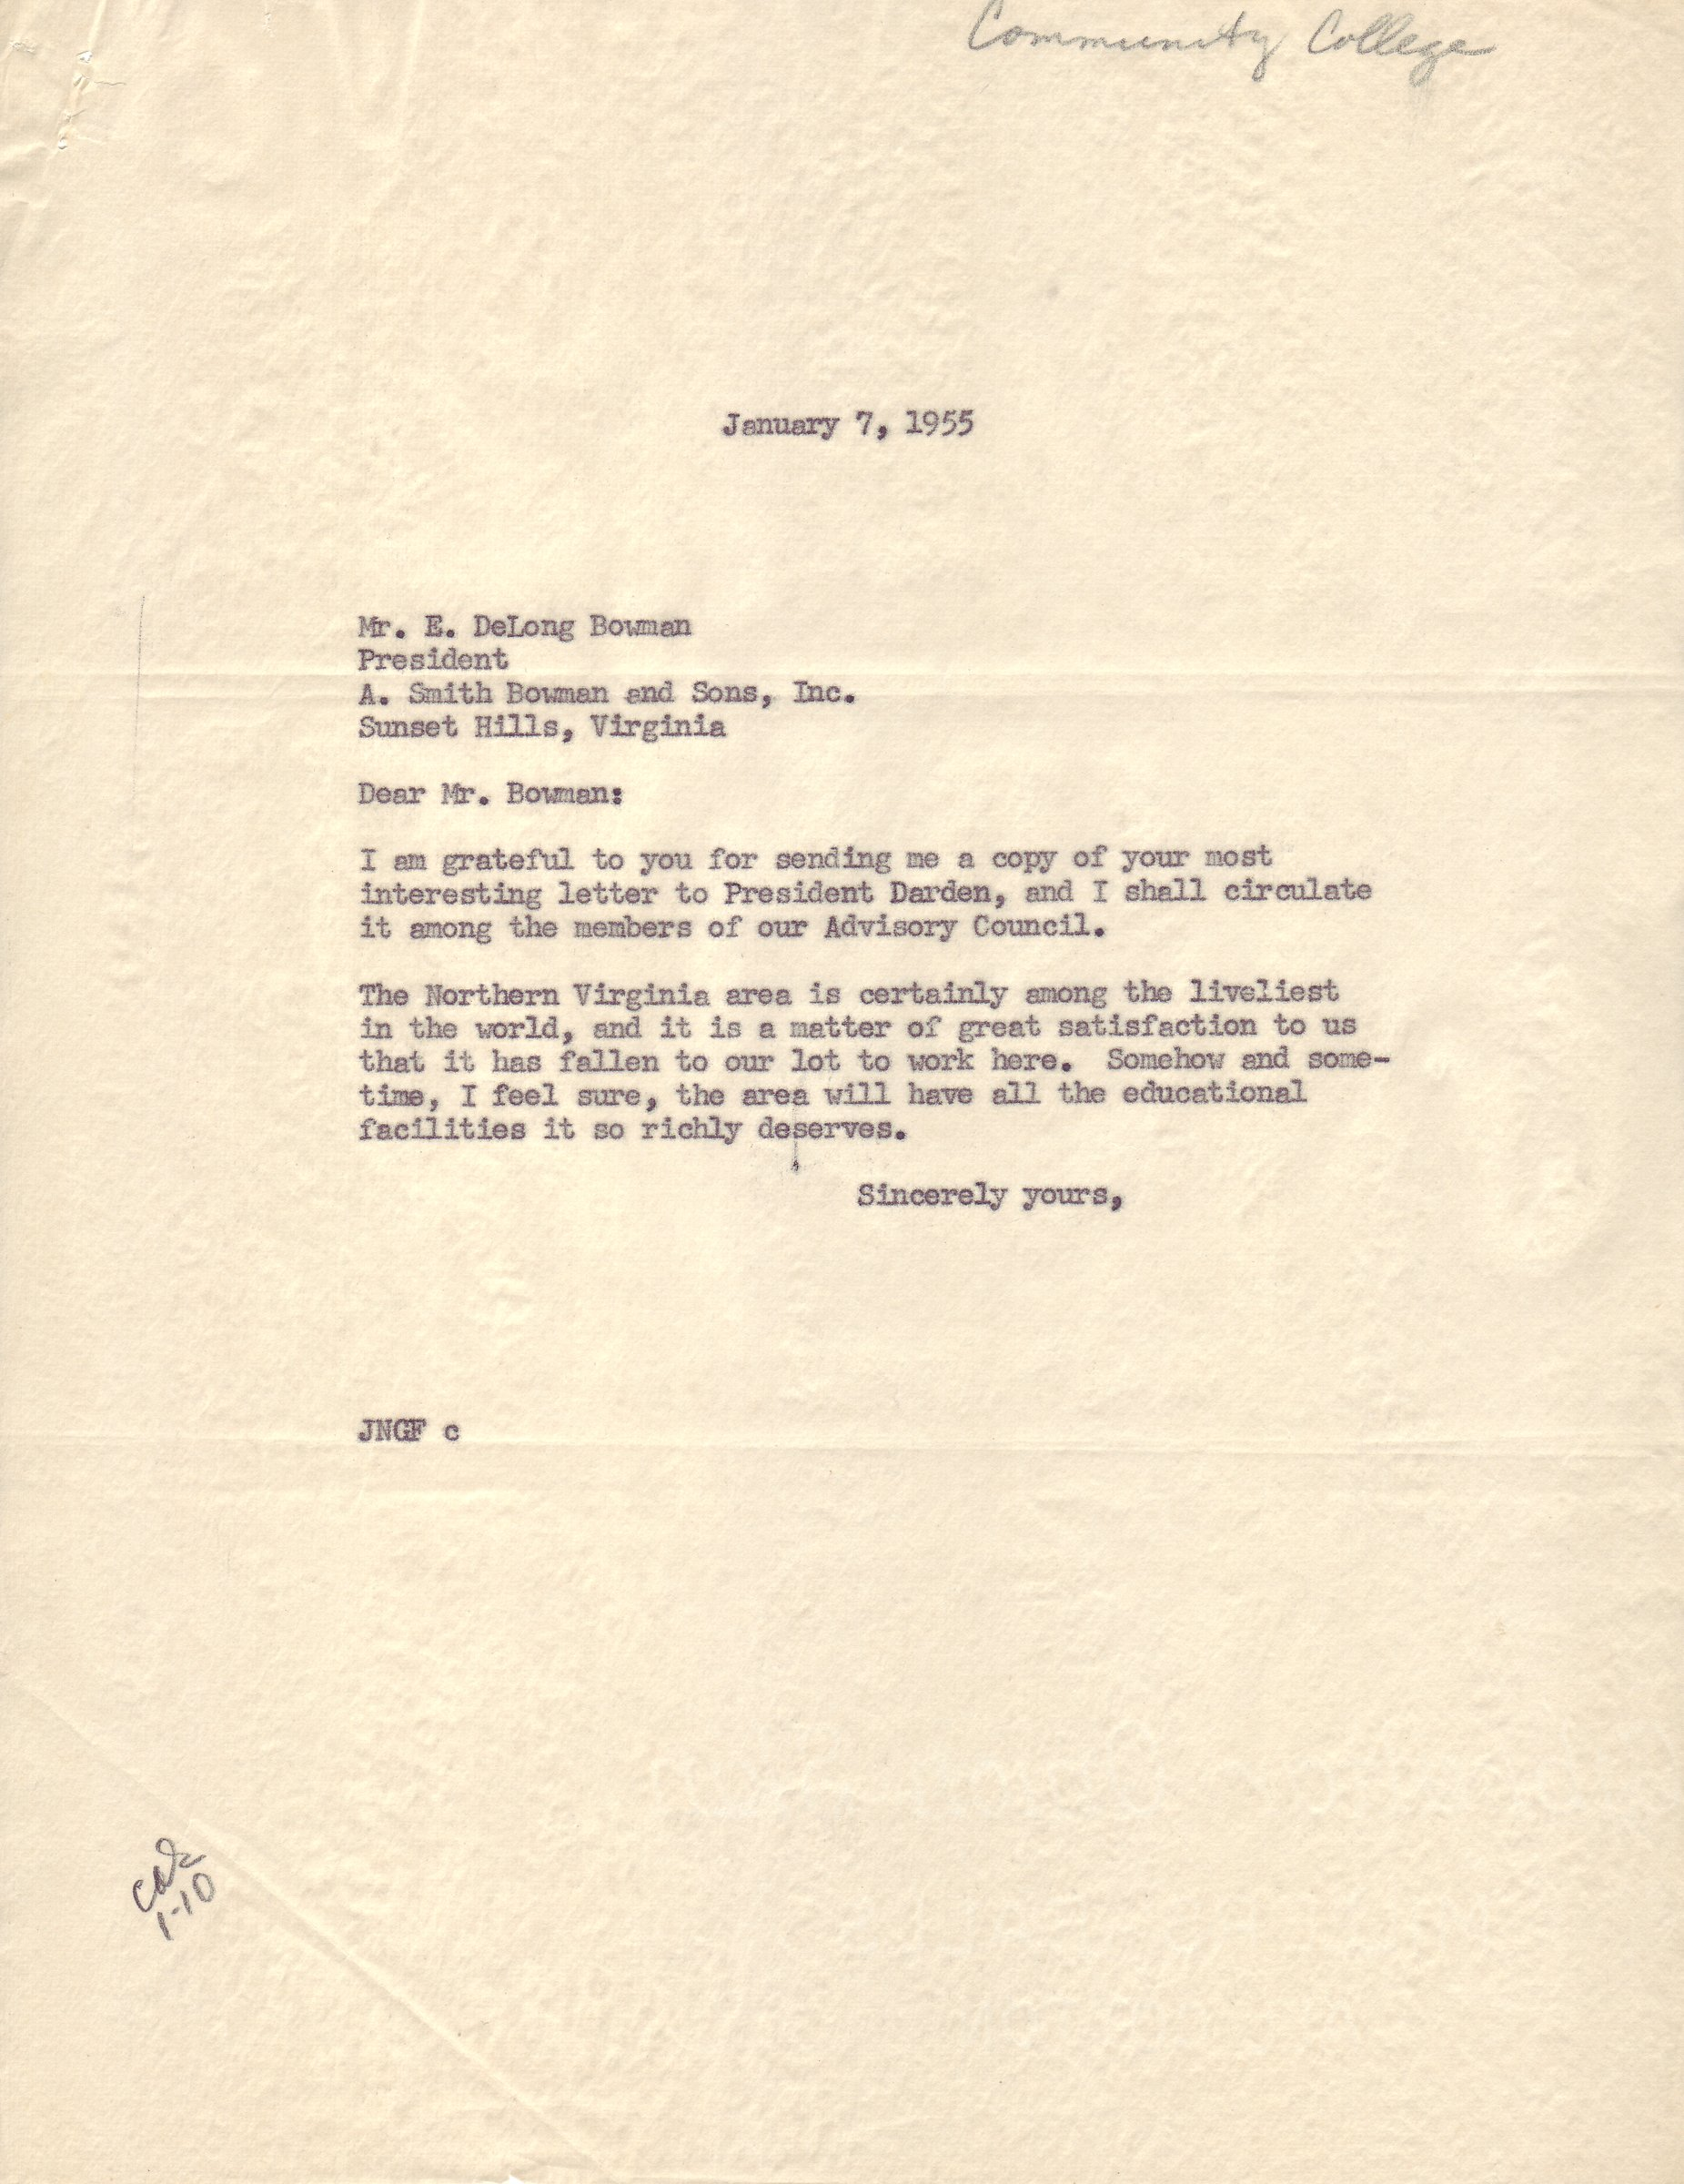 John Norville Gibson Finley to E. DeLong Bowman, January 17, 1955.